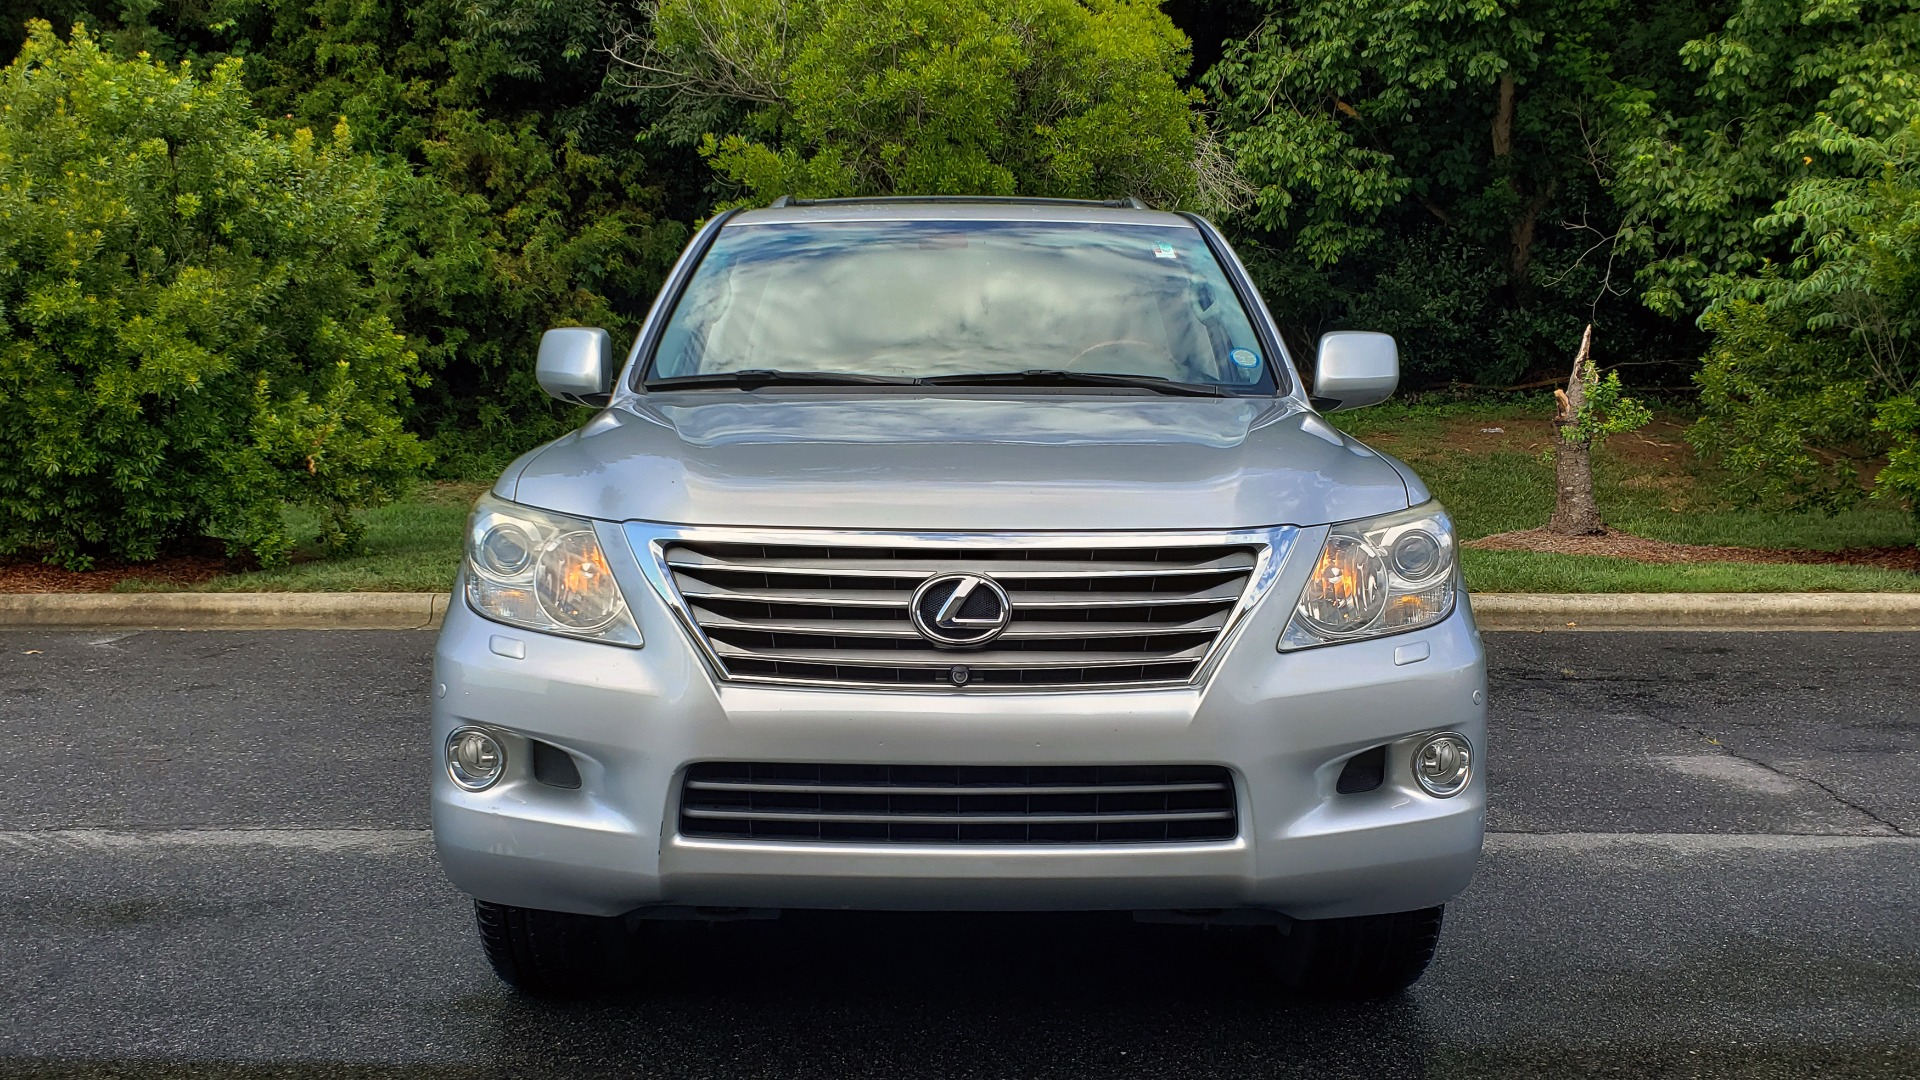 Used 2008 Lexus LX 570 4WD NAV / TECHNOLOGY PKG / 3-ROW / SUNROOF / REARVIEW for sale Sold at Formula Imports in Charlotte NC 28227 24